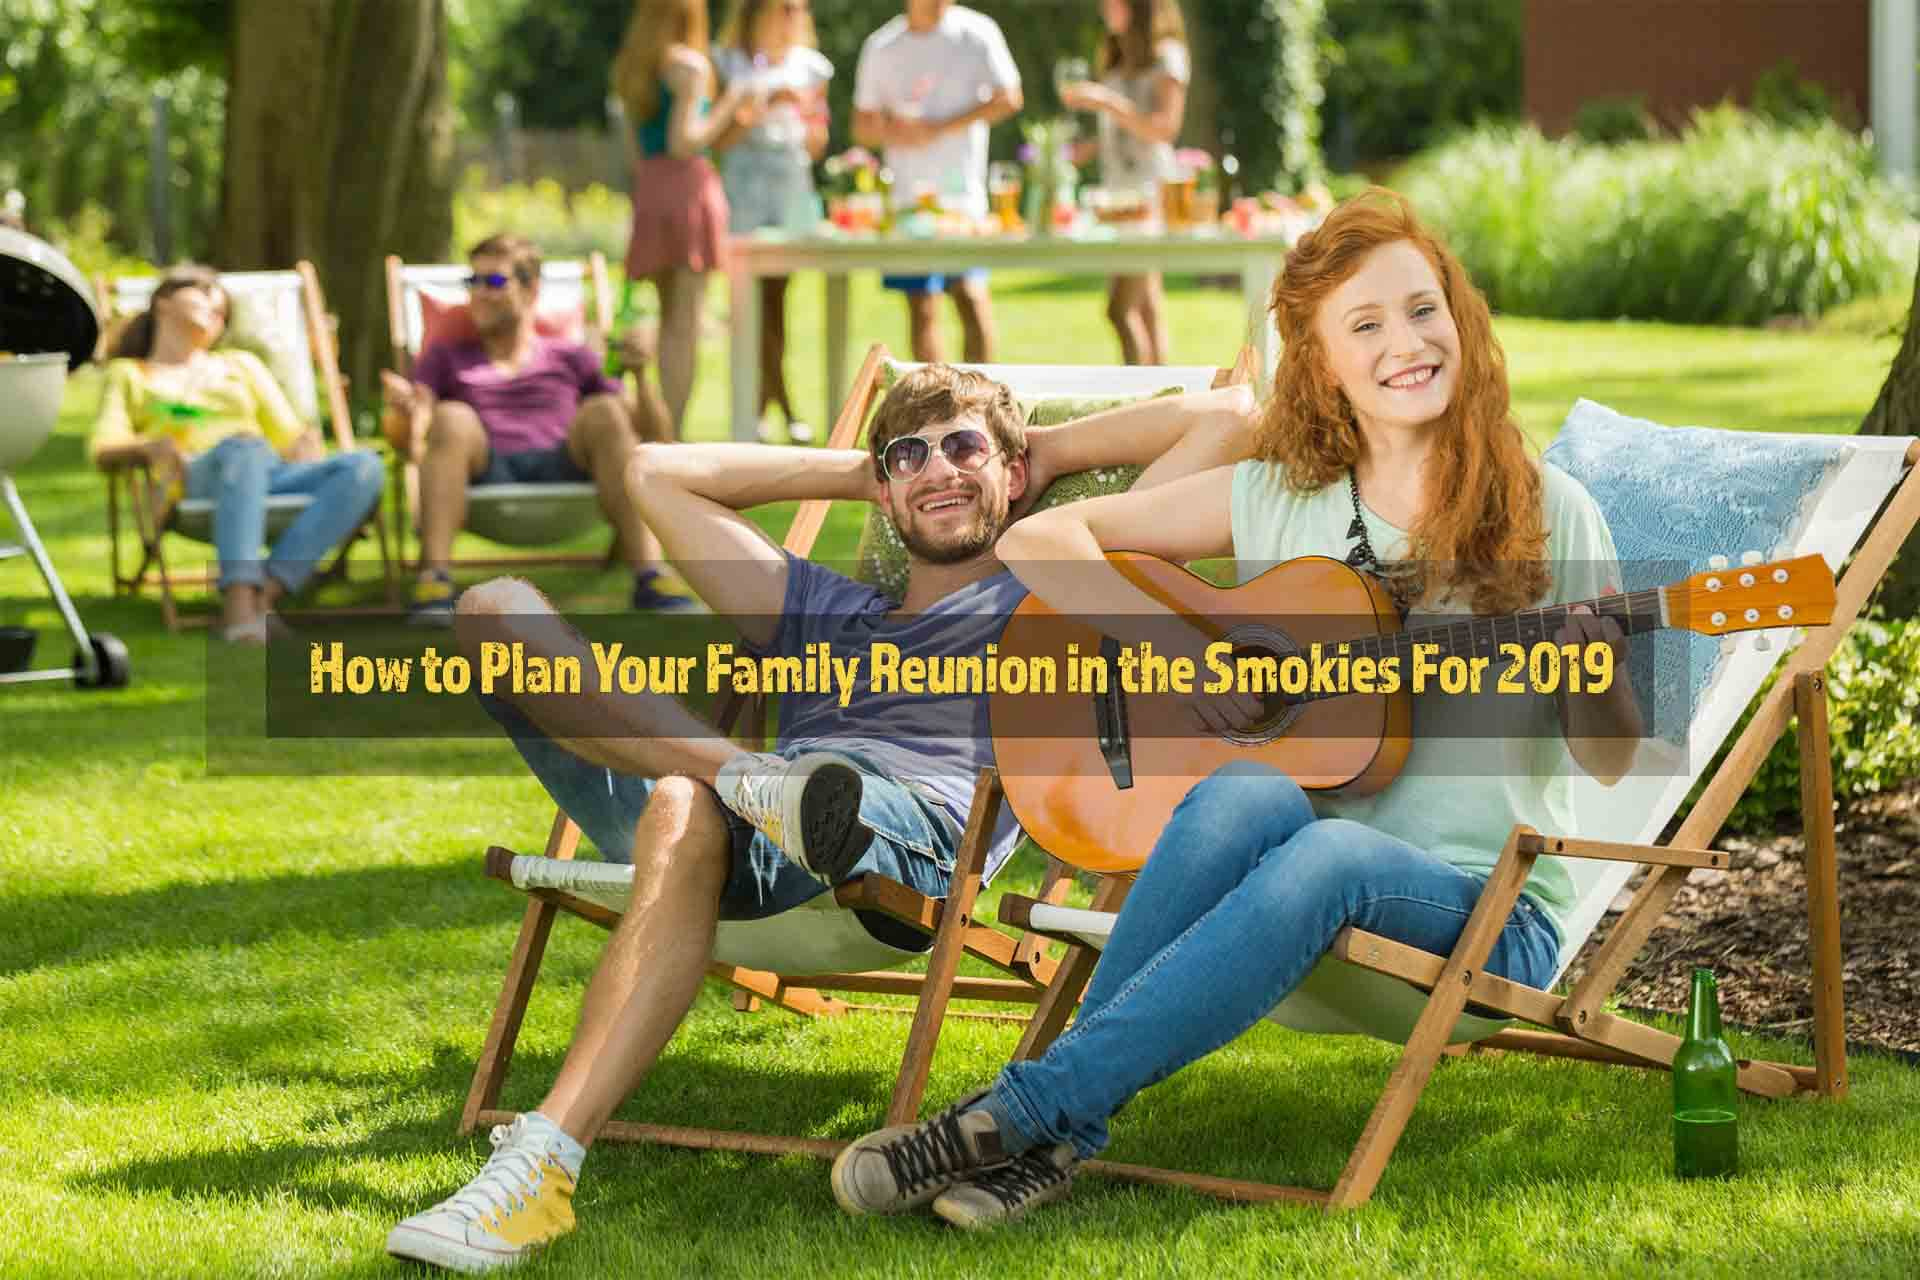 How-to-Plan-Your-Family-Reunion-in-the-Smokies-For-2019.jpg